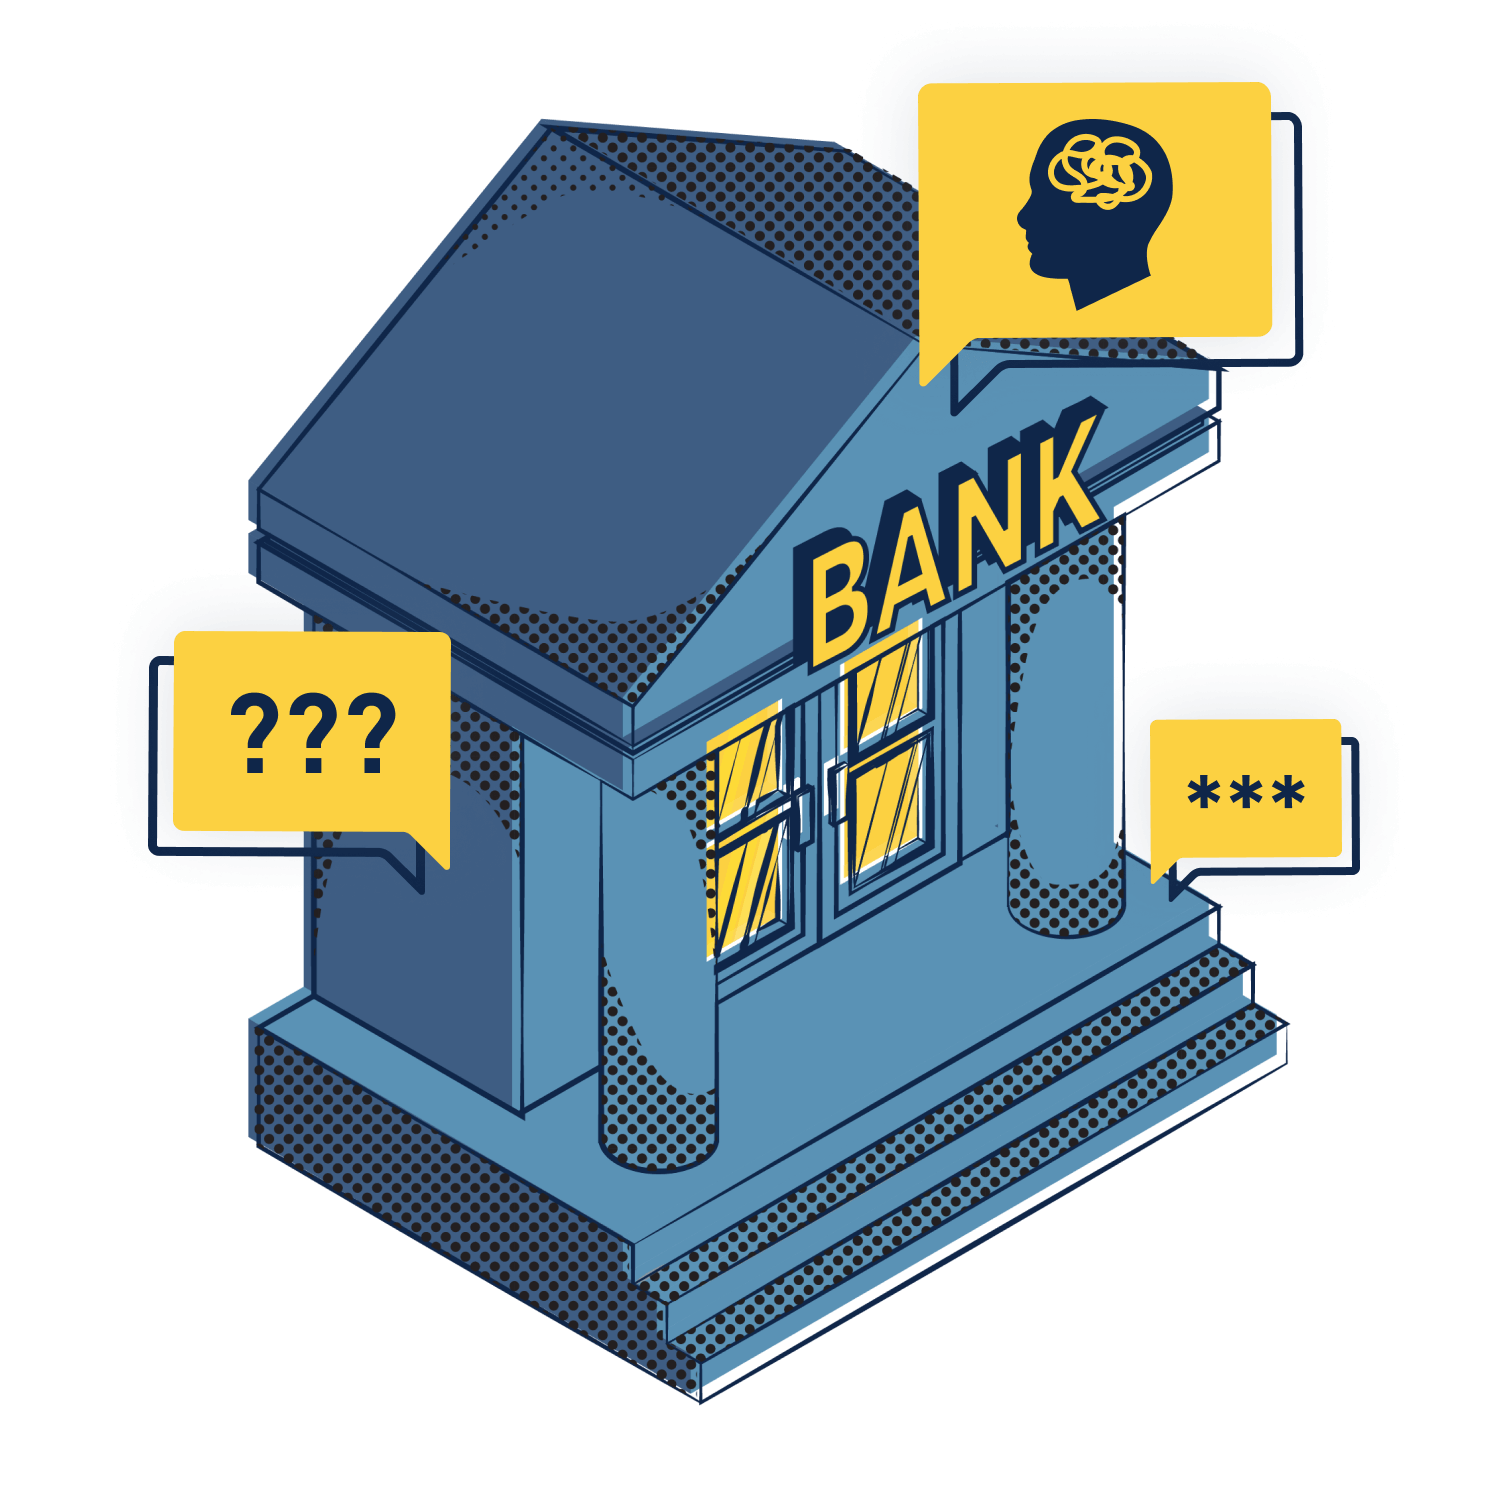 Trying to wrangle insights from vast quantities of raw transactions is an enormous challenge for banks